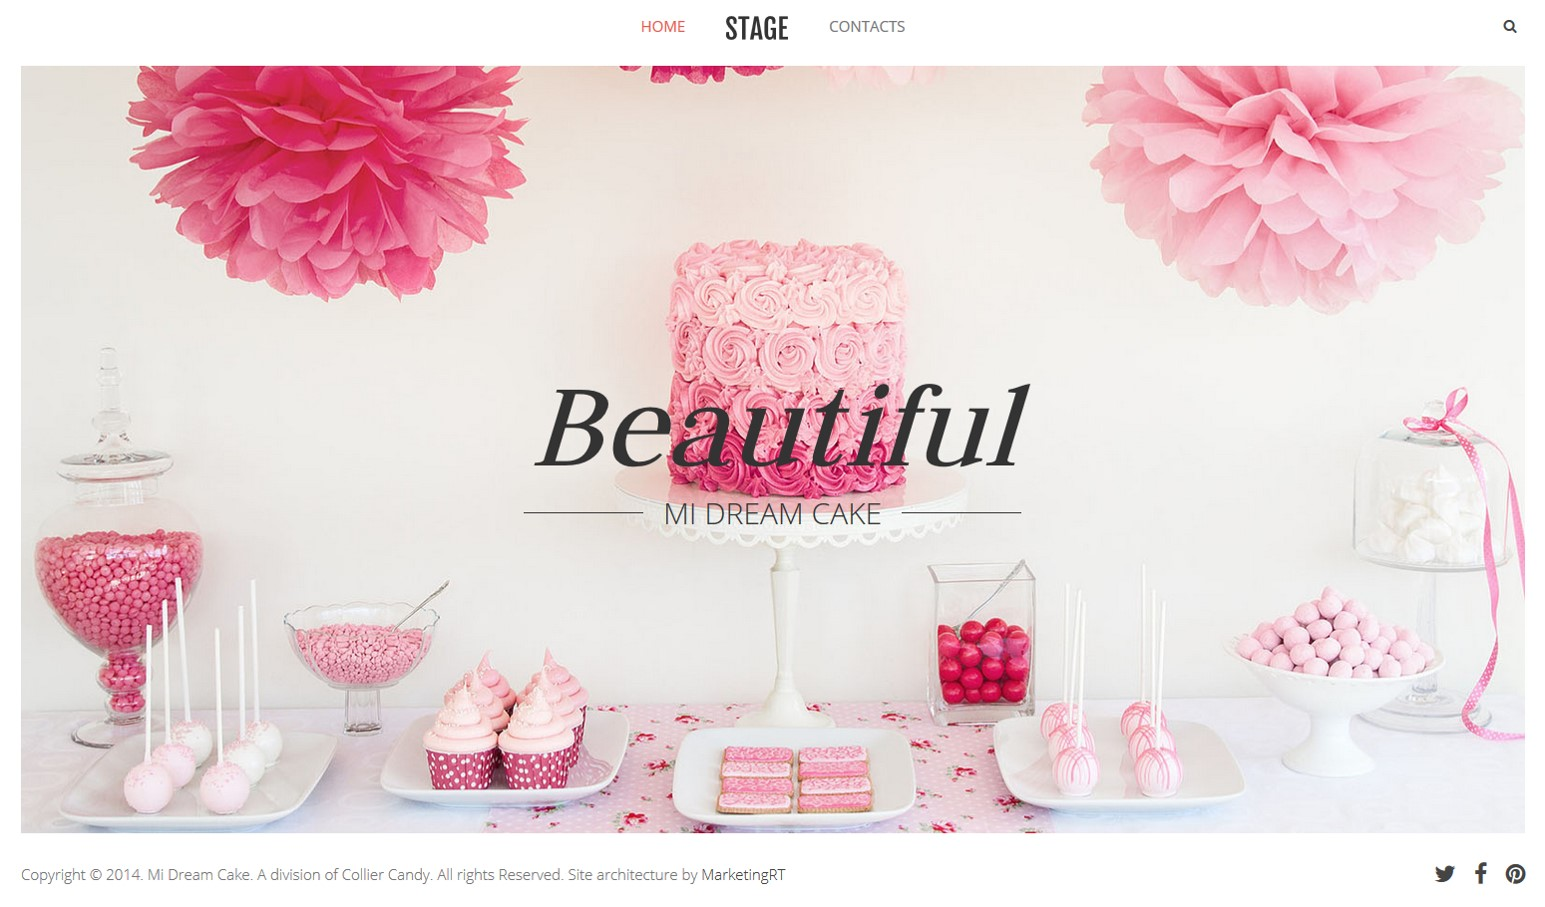 Project: Website - Mi Dream Cakes